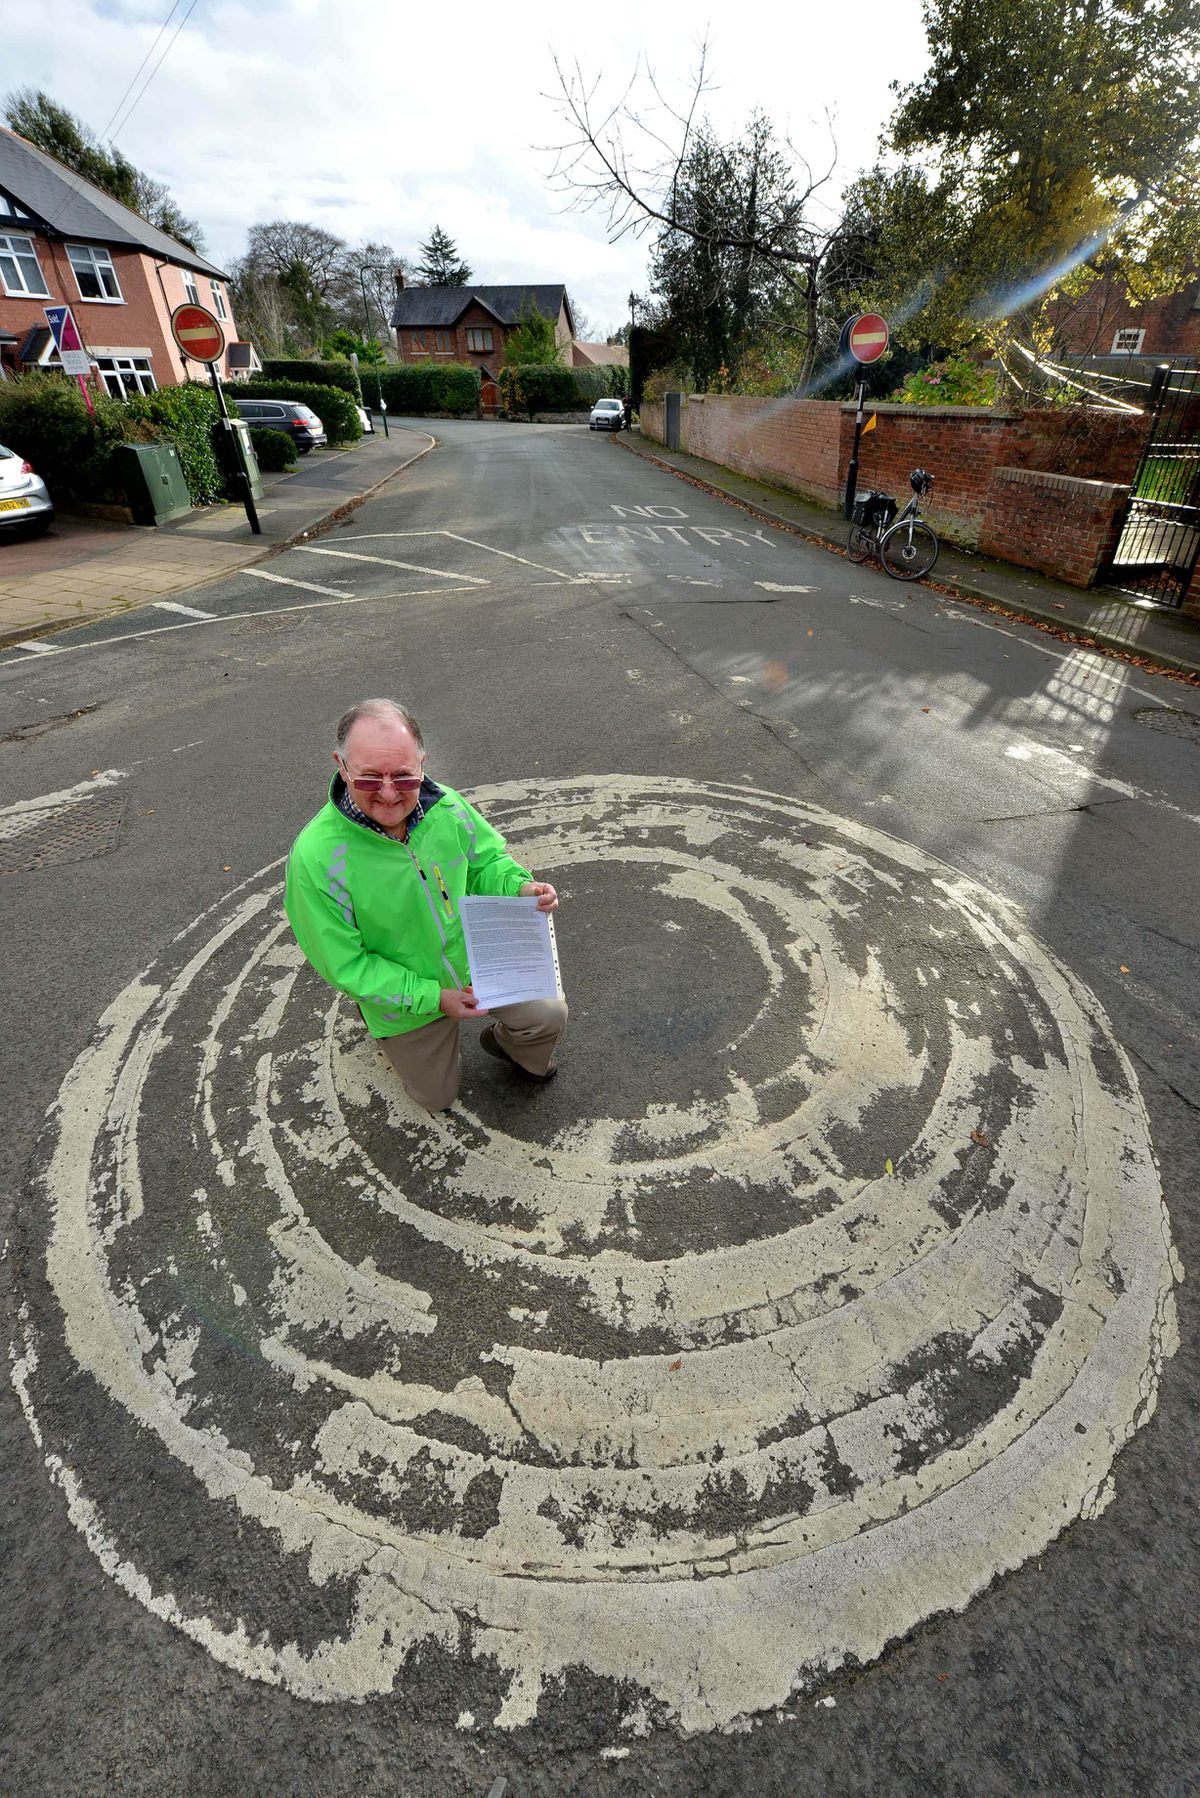 Bernie Bentick submitted a petition to Shropshire Council on behalf of Meole Traffic Group to campaign for safer roads